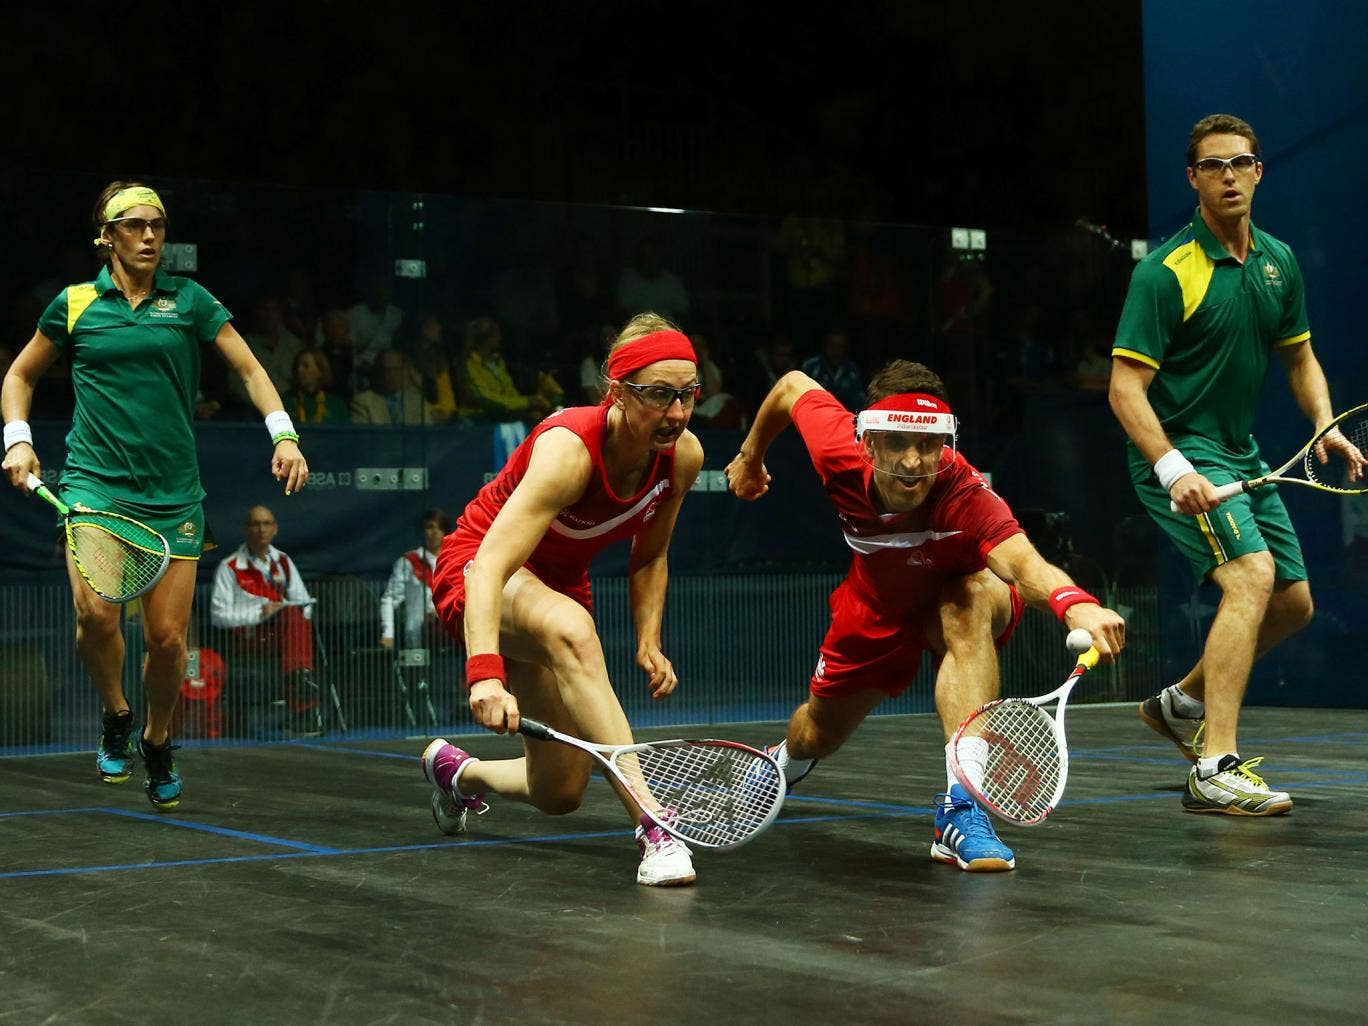 England's Peter Barker and Alison Waters (red kit) were beaten by David Palmer and Rachael Grinham, of Australia